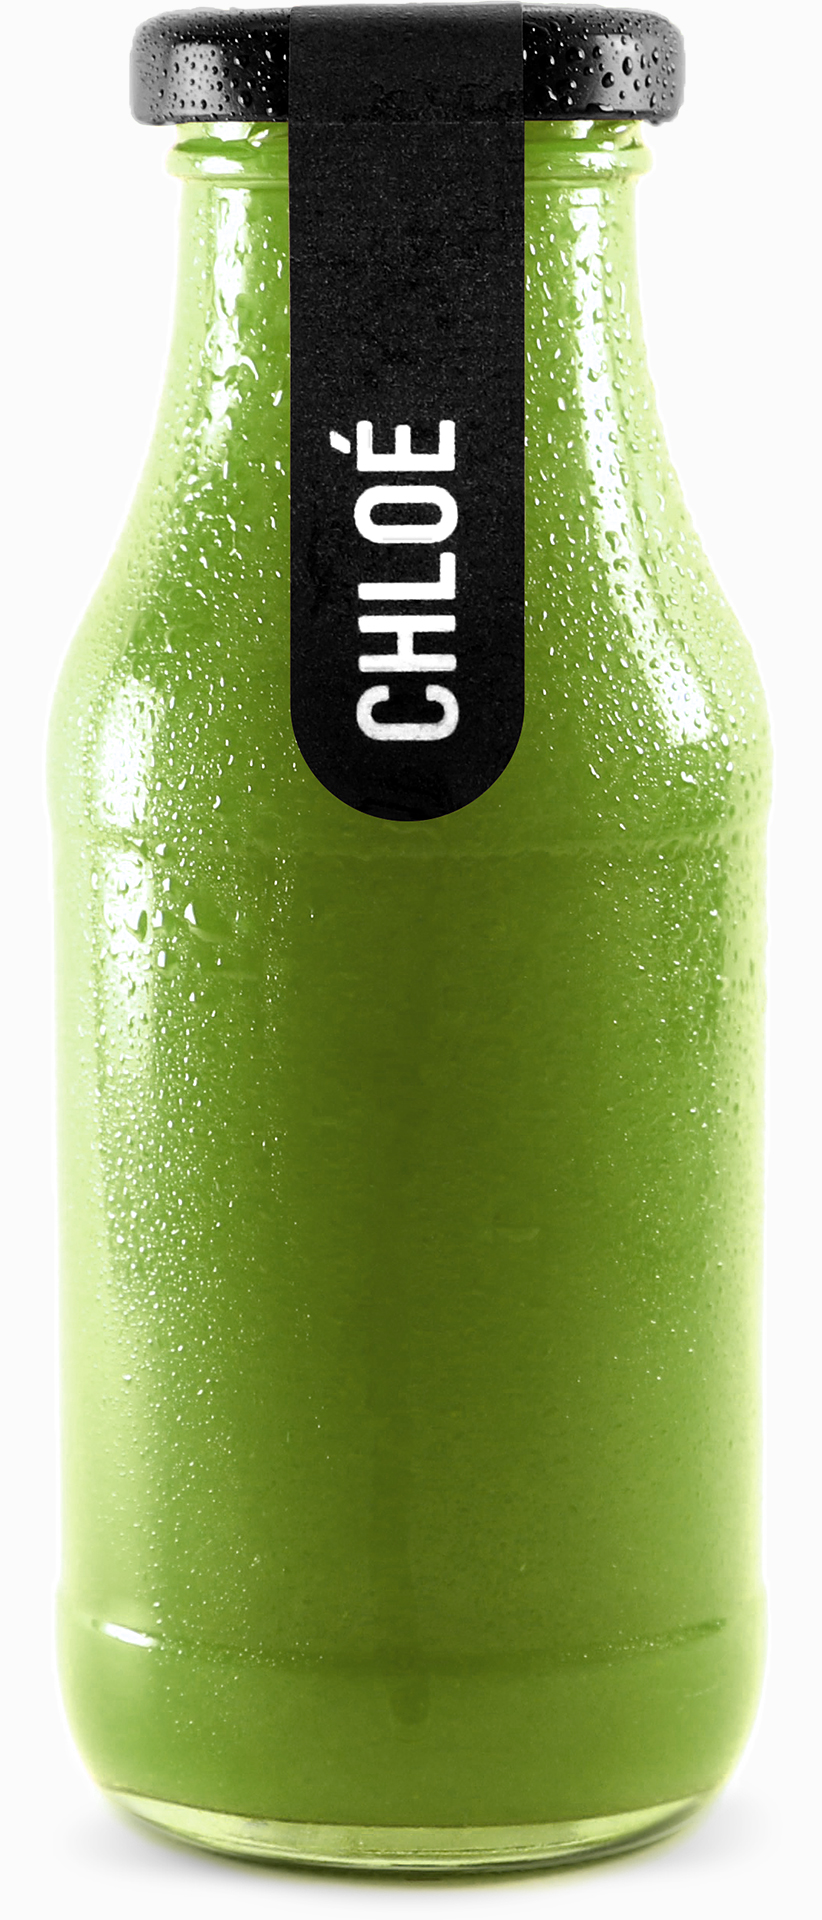 Chloe – Bio Green Smoothie in 270ml Glasflasche.